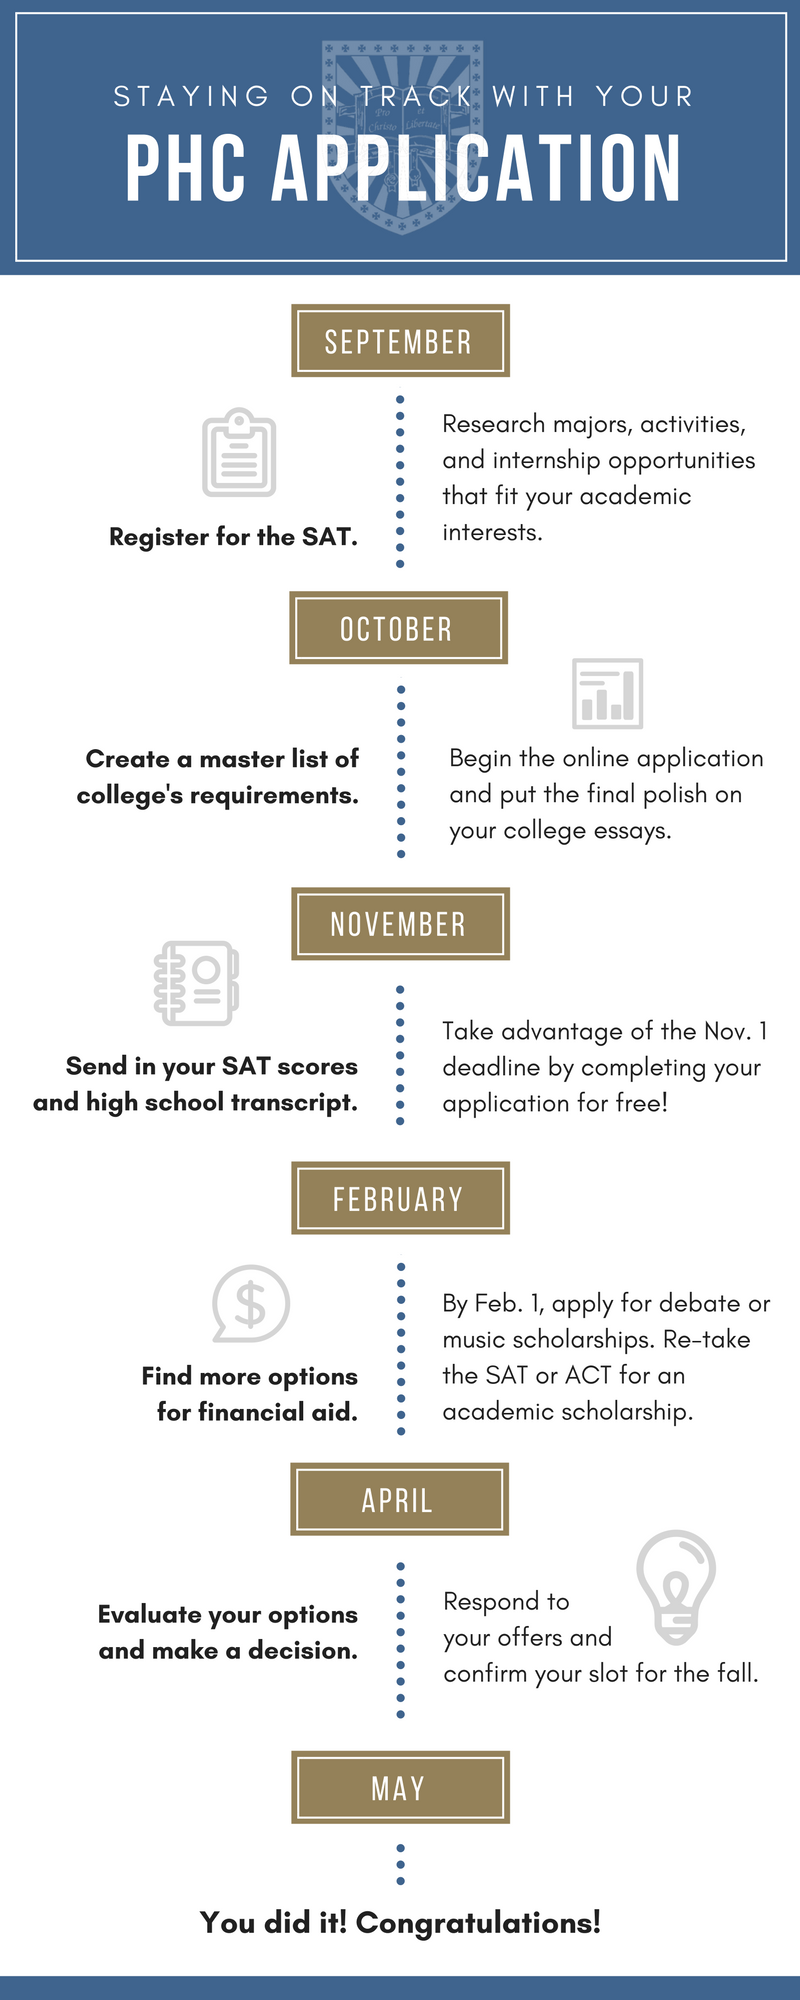 PHC_Application_Timeline-1.png